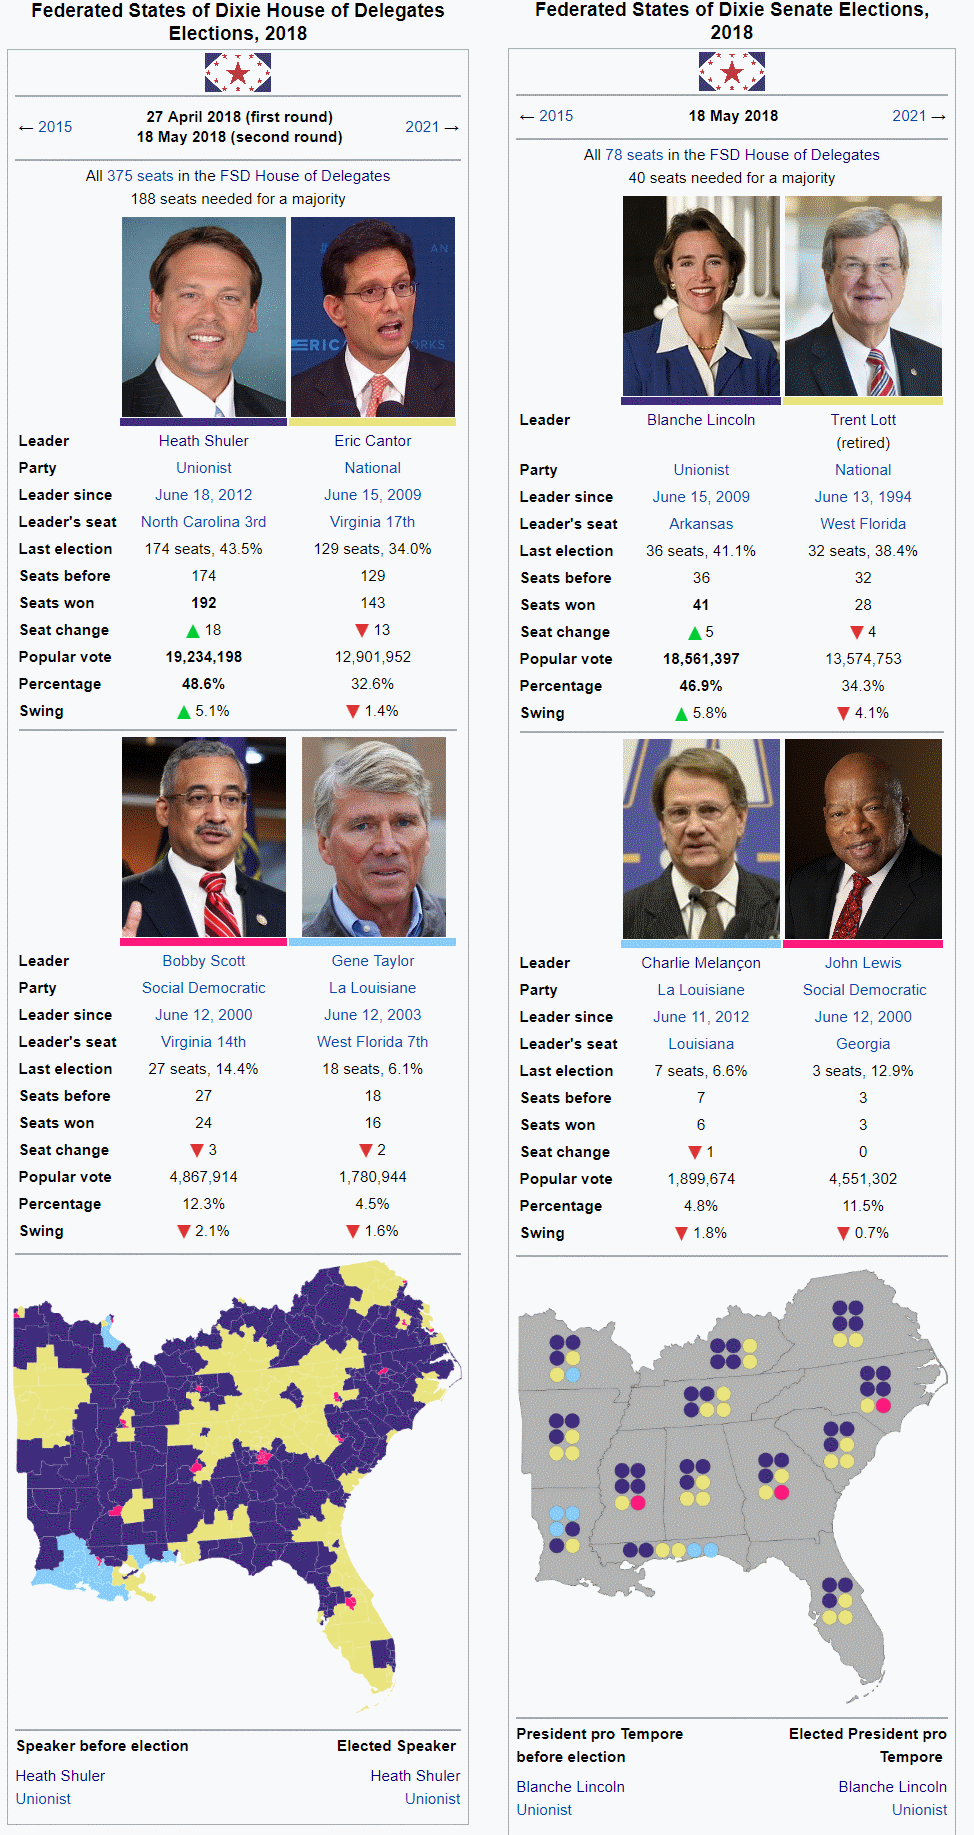 2018 Congressional Election Wiki.png